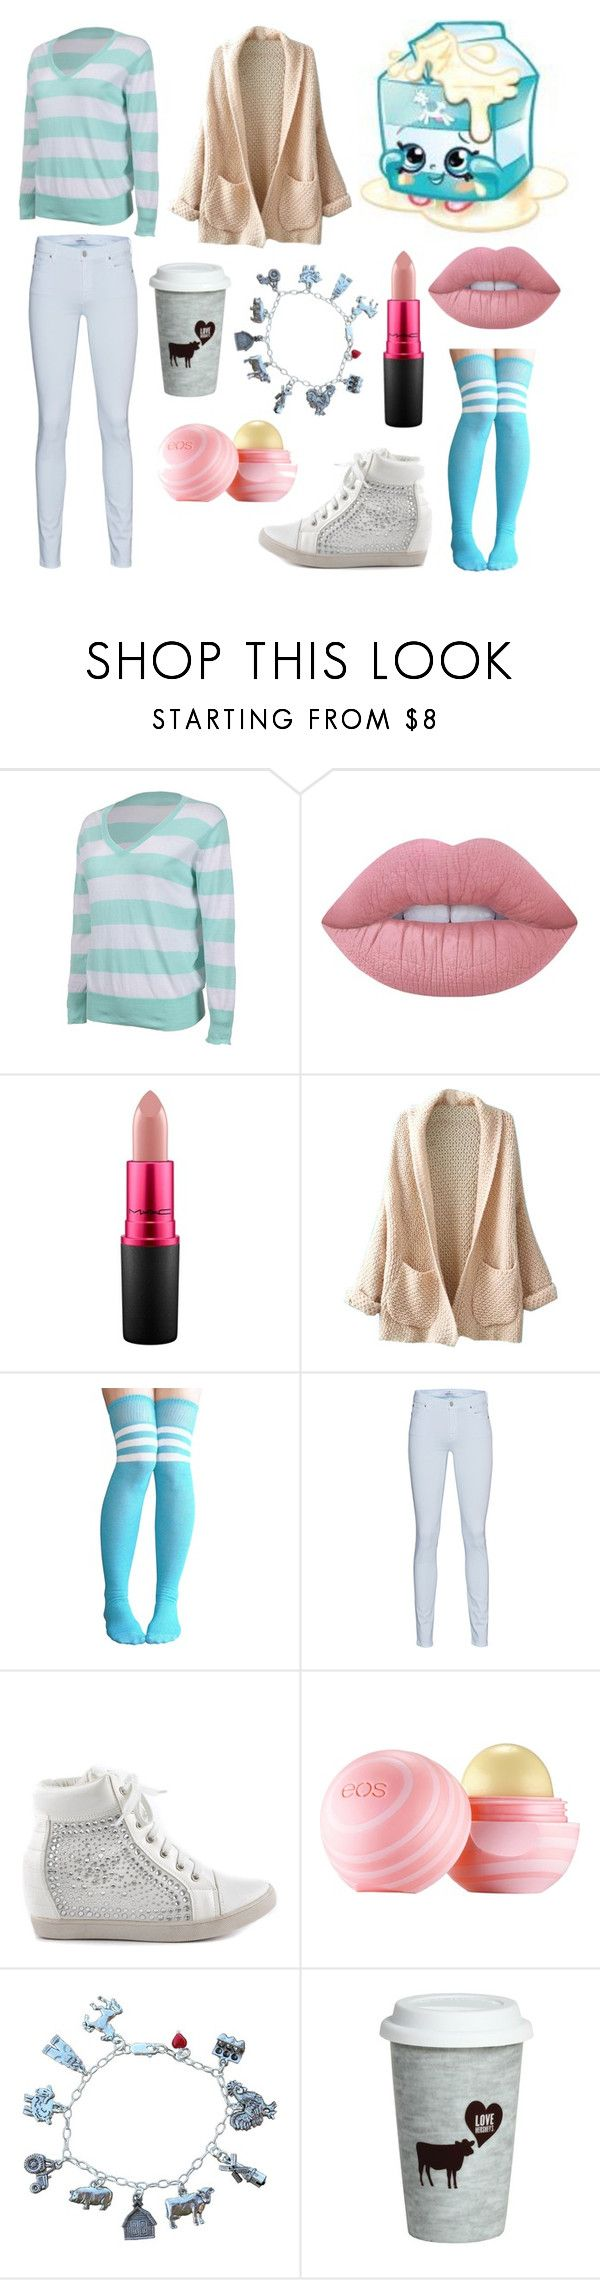 """""""Shopkins 6"""" by theultimatefashionlover on Polyvore featuring mode, Shopkins, Forever Lily, Lime Crime, MAC Cosmetics, WithChic, 7 For All Mankind, Lauren Lorraine, Eos en Fitz & Floyd"""